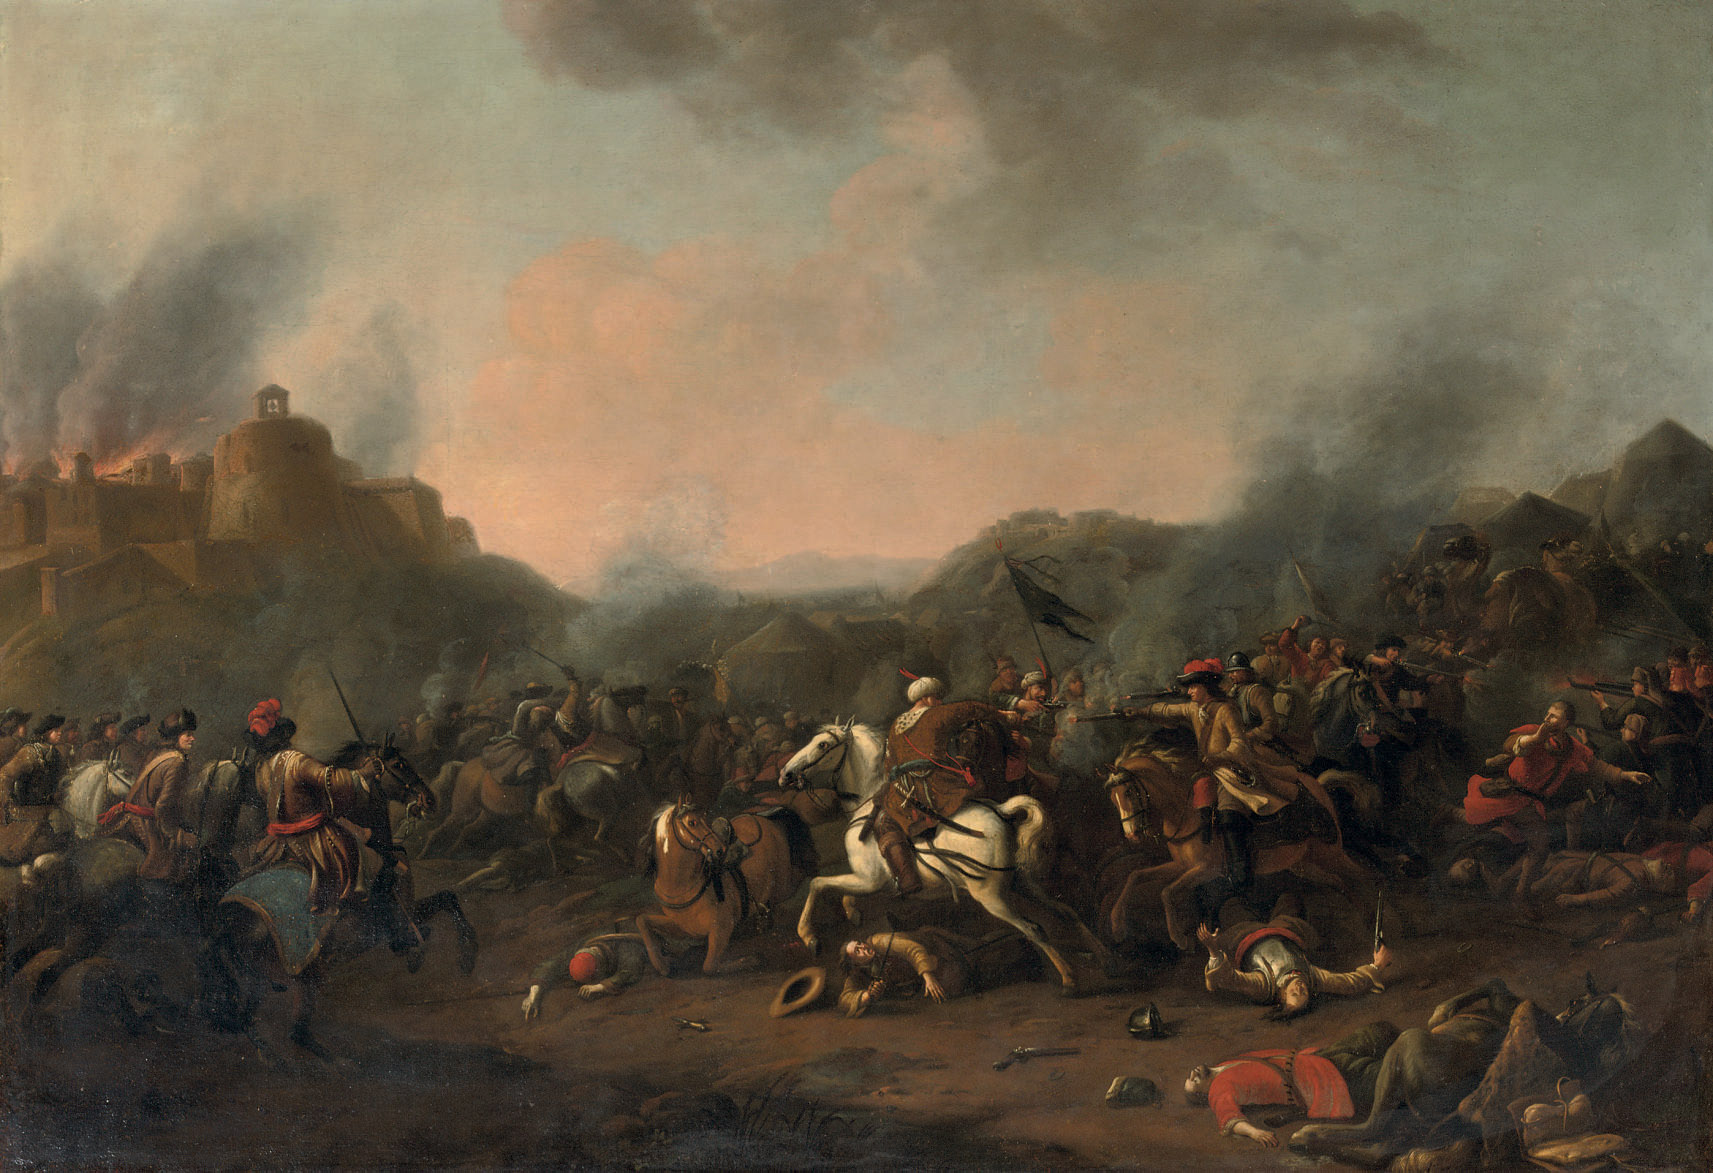 A cavalry skirmish, traditionally said to depict the Battle of Las Navas de Tolosa